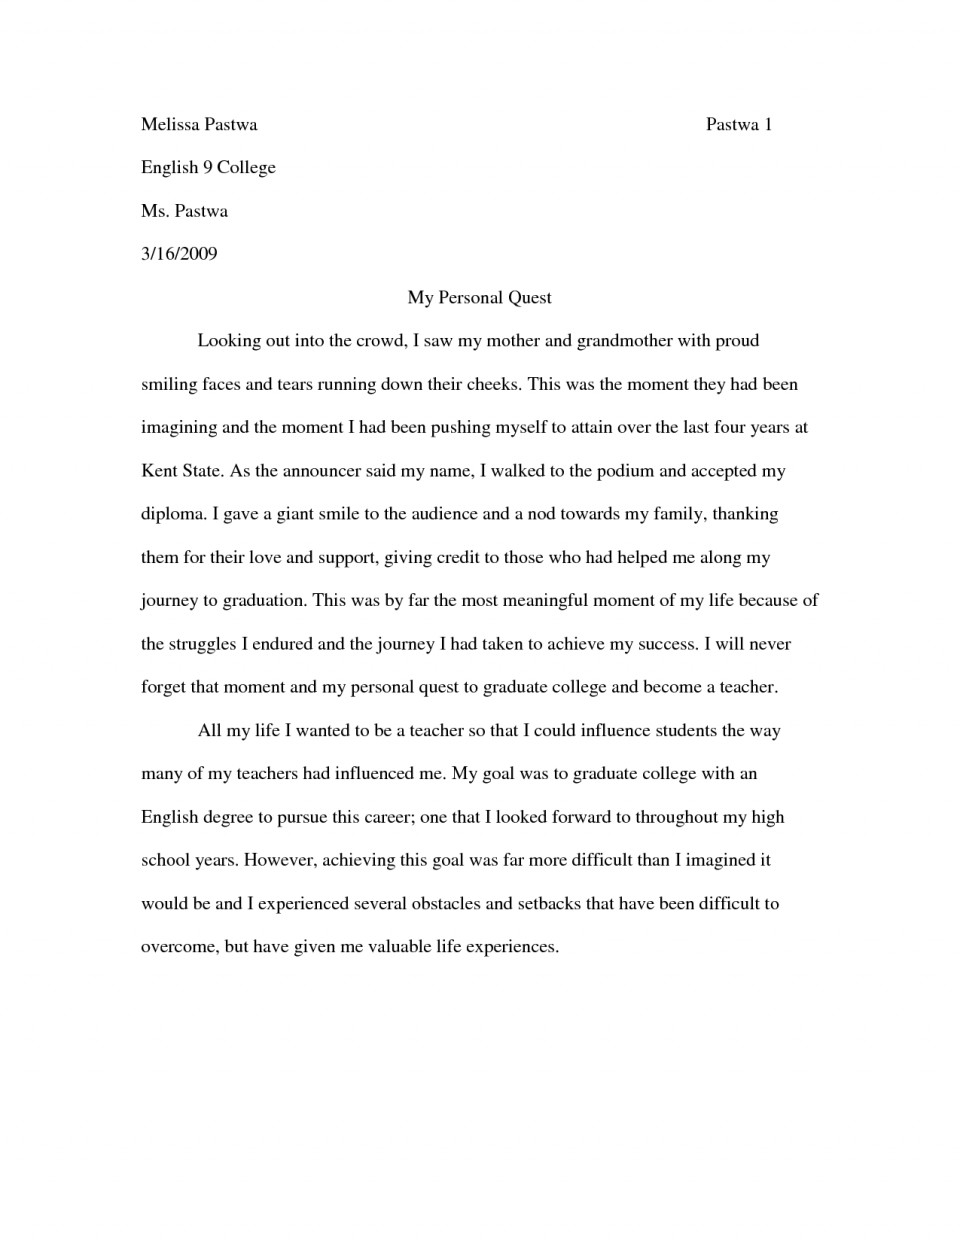 007 Essay Example Narrative Dialogue Of L Magnificent About Yourself Introduction Friendship 960